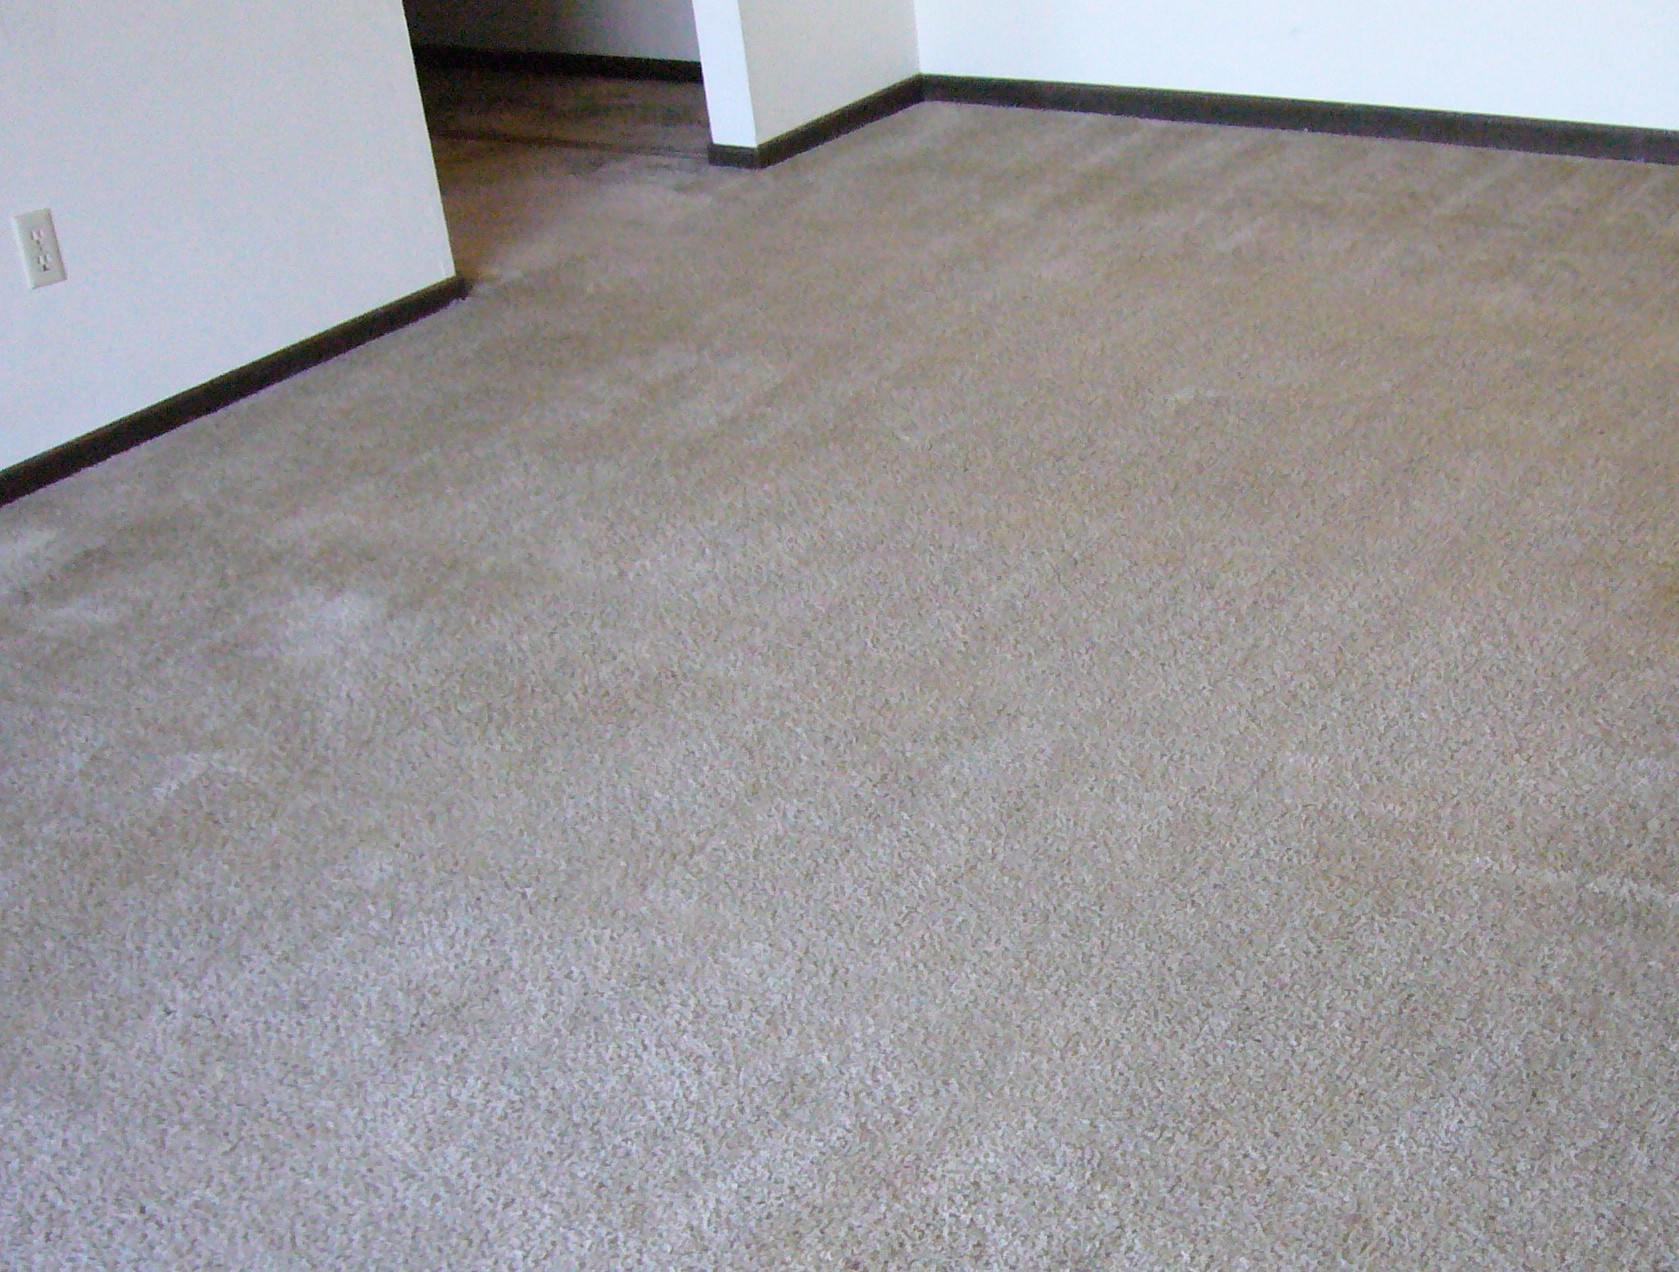 How To Clean Heavily Soiled Carpet Mycoffeepot Org